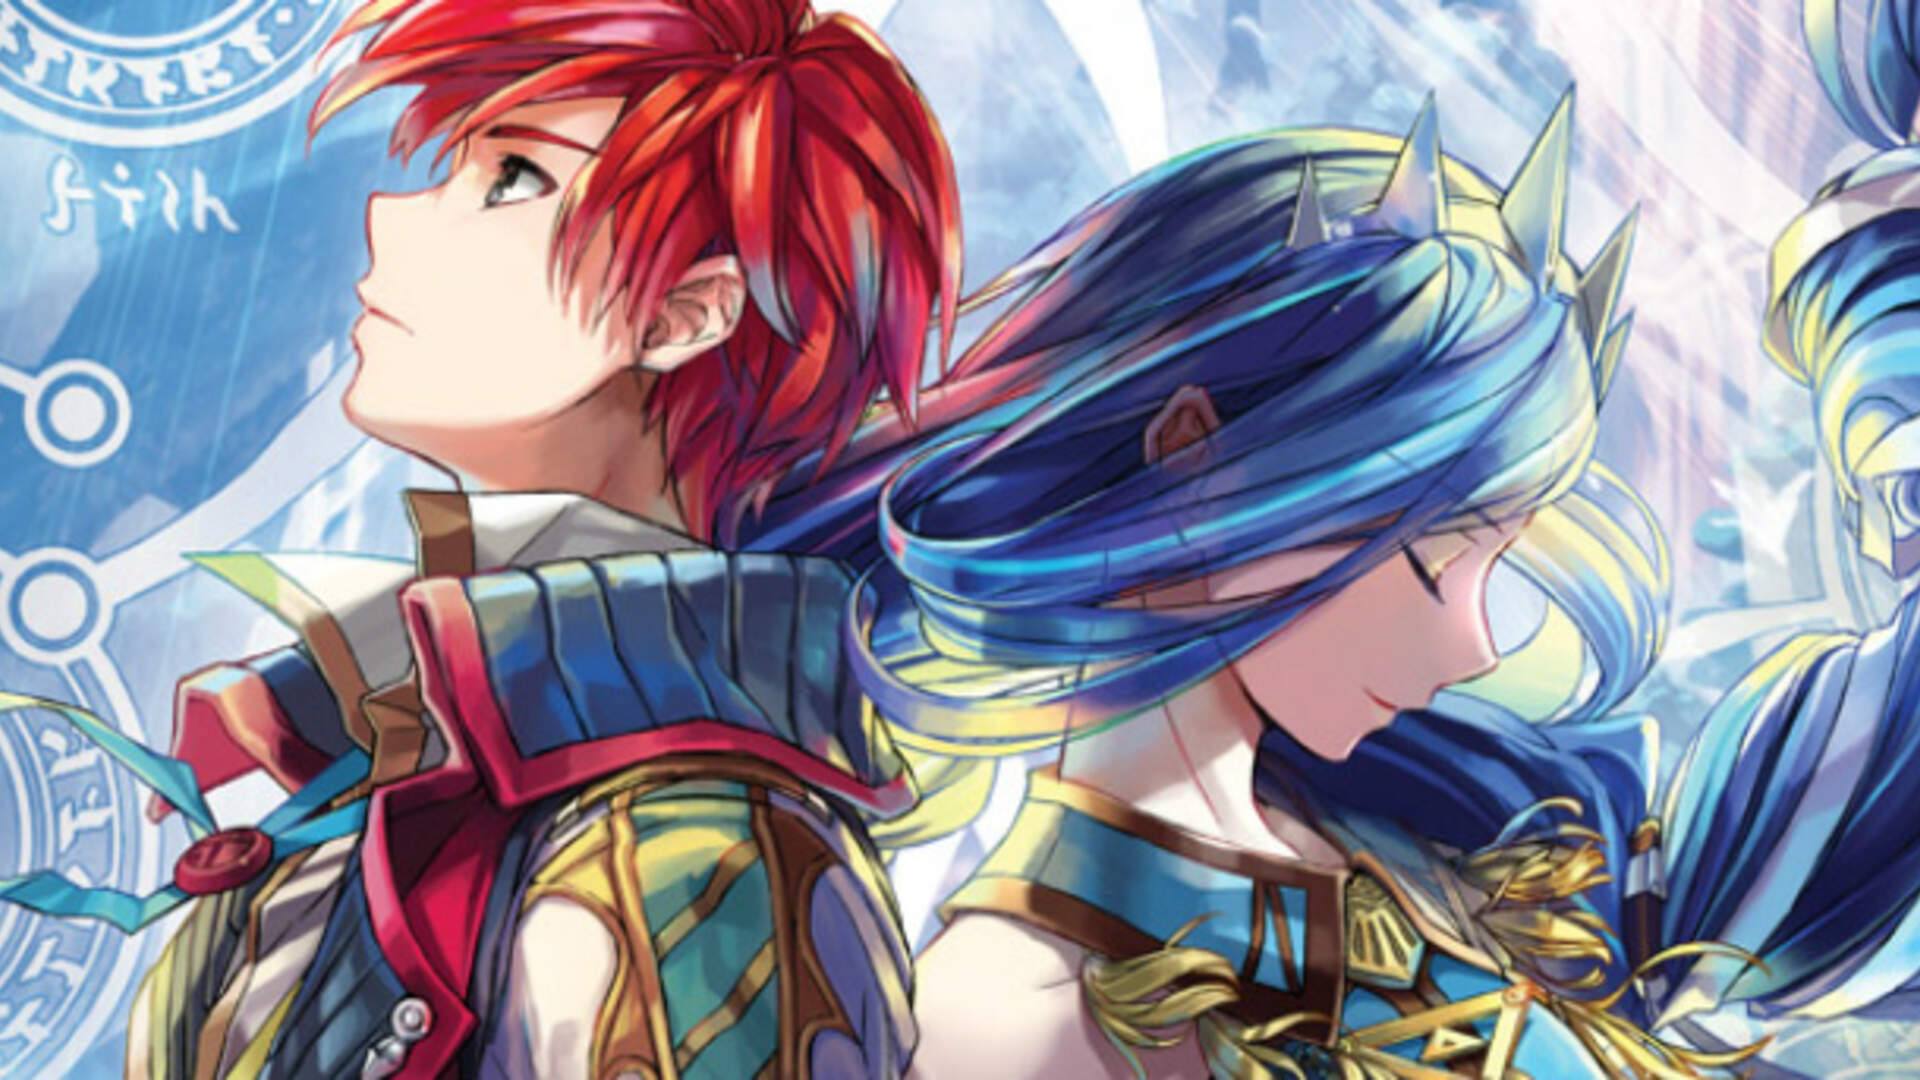 Ys 8 Out Today on PC With Free Digital Bonuses and Revised Localization